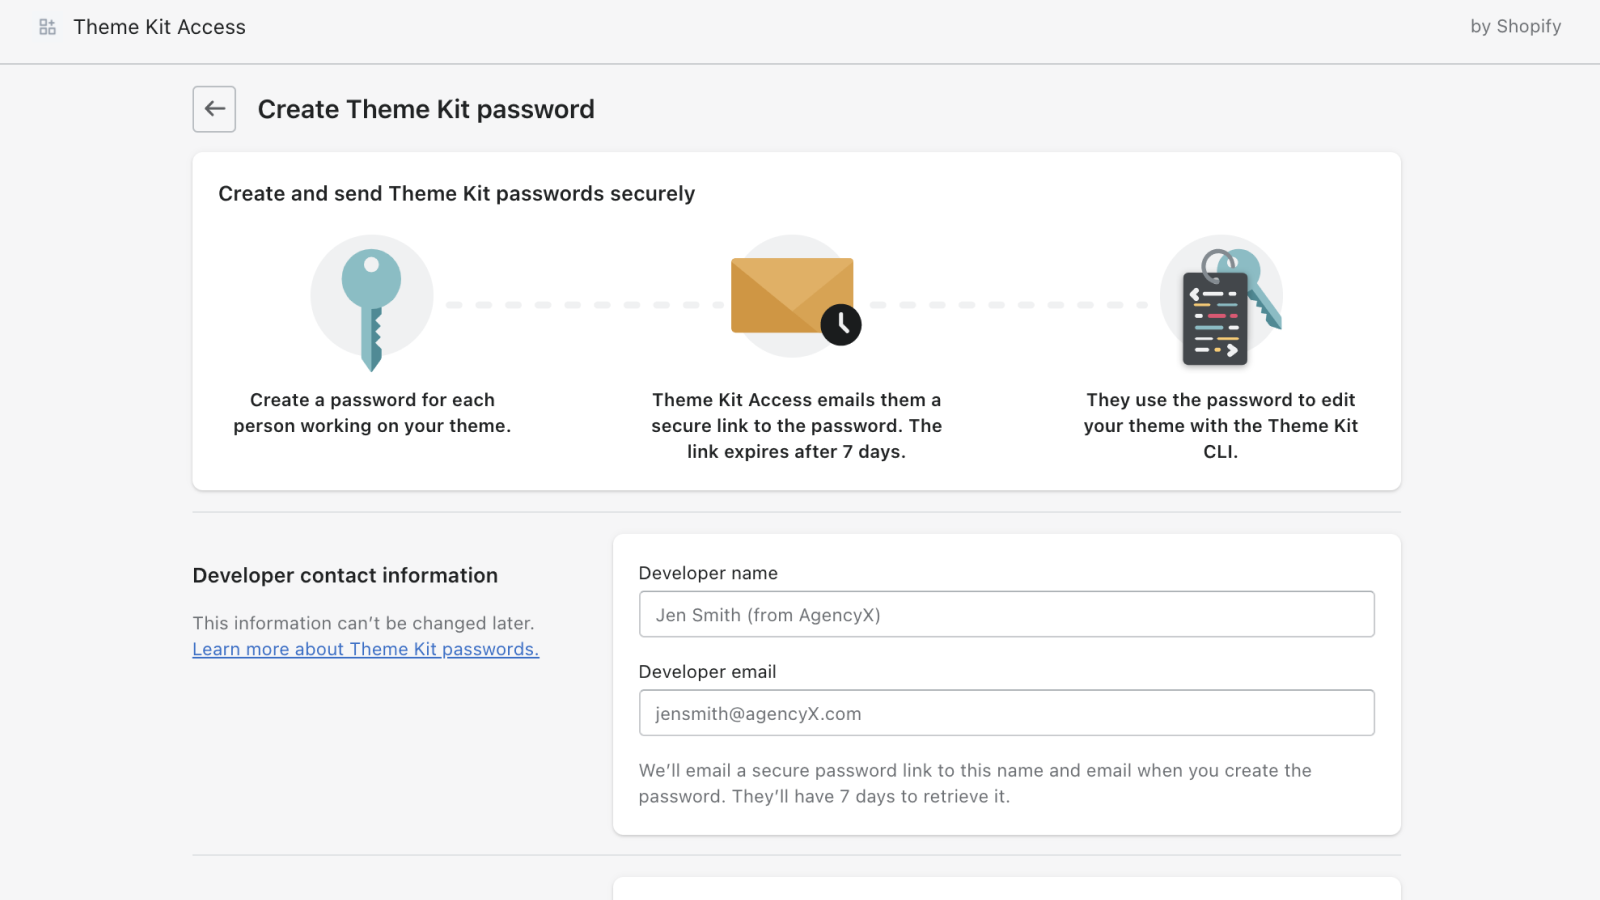 Create and send Theme Kit passwords to developer partners